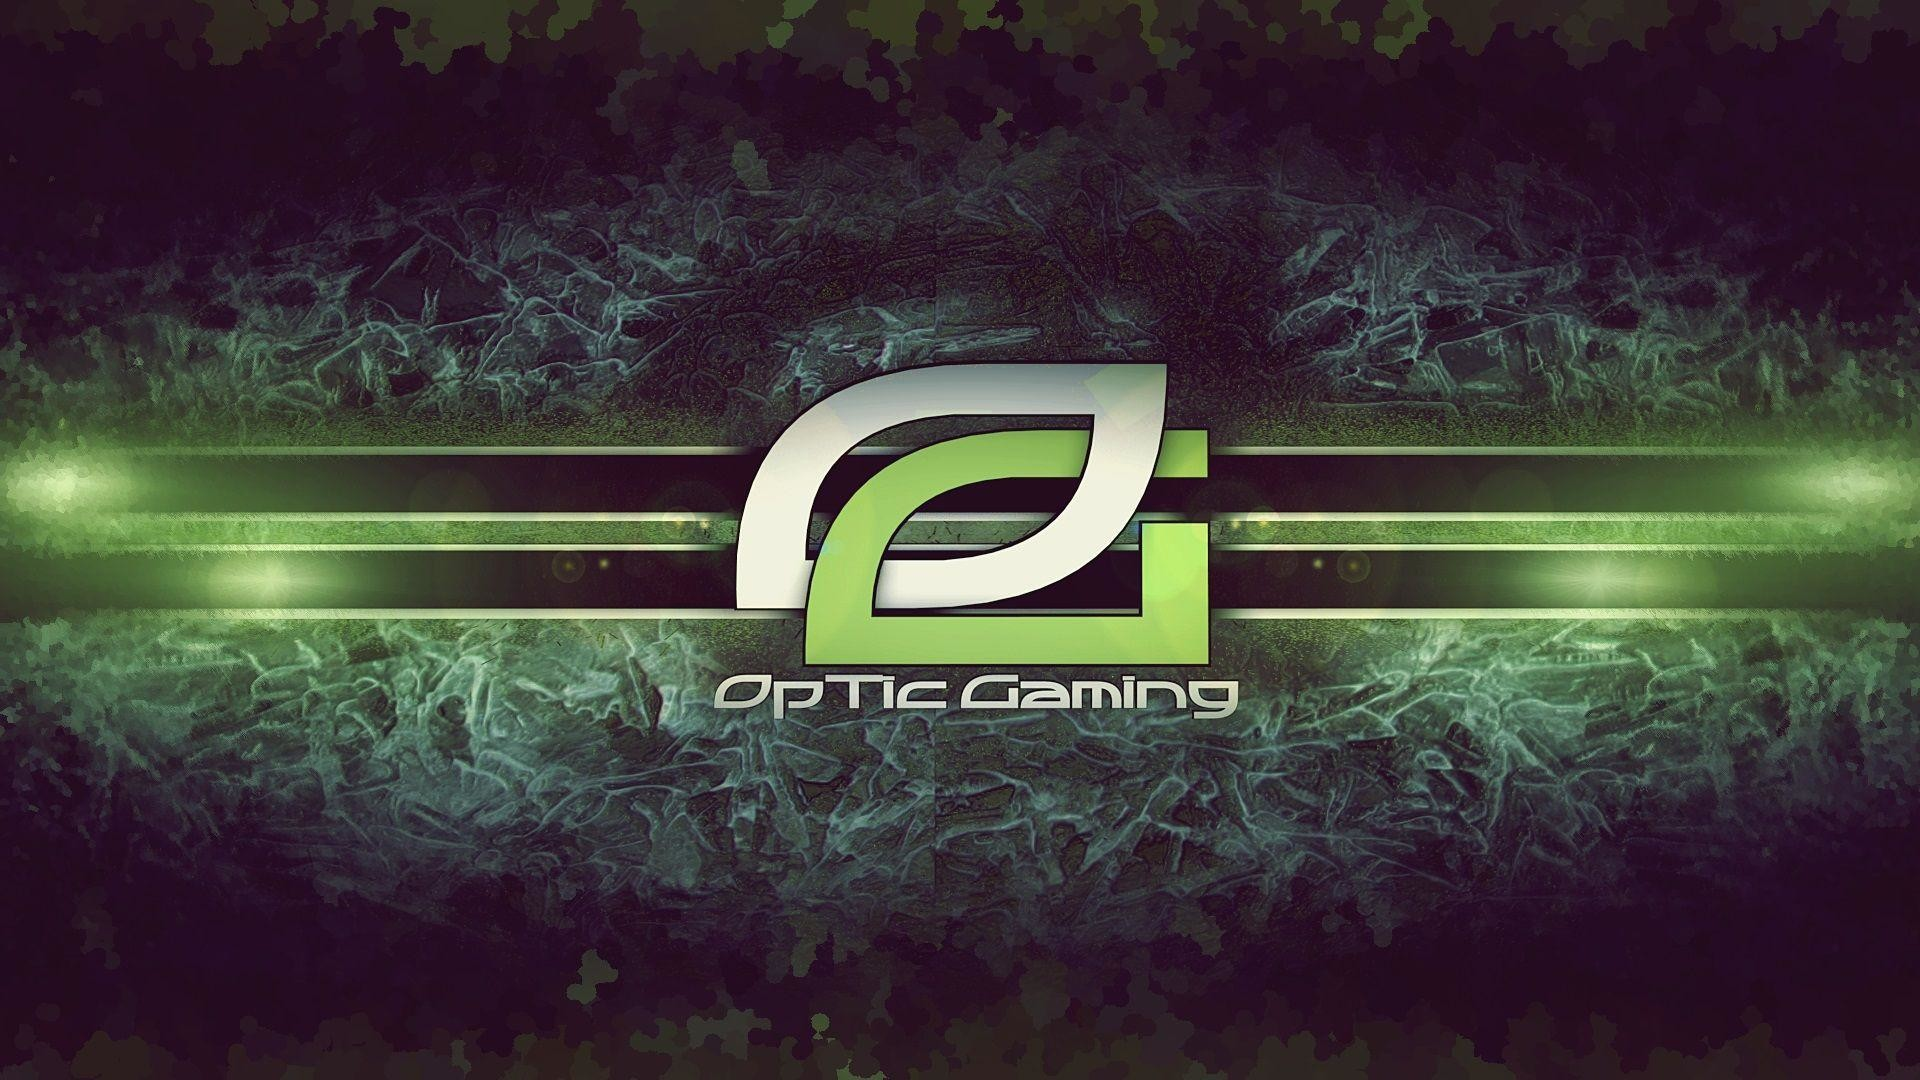 Res: 1920x1080, Optic Gaming Backgrounds | Wallpapers, Backgrounds, Images, Art ..